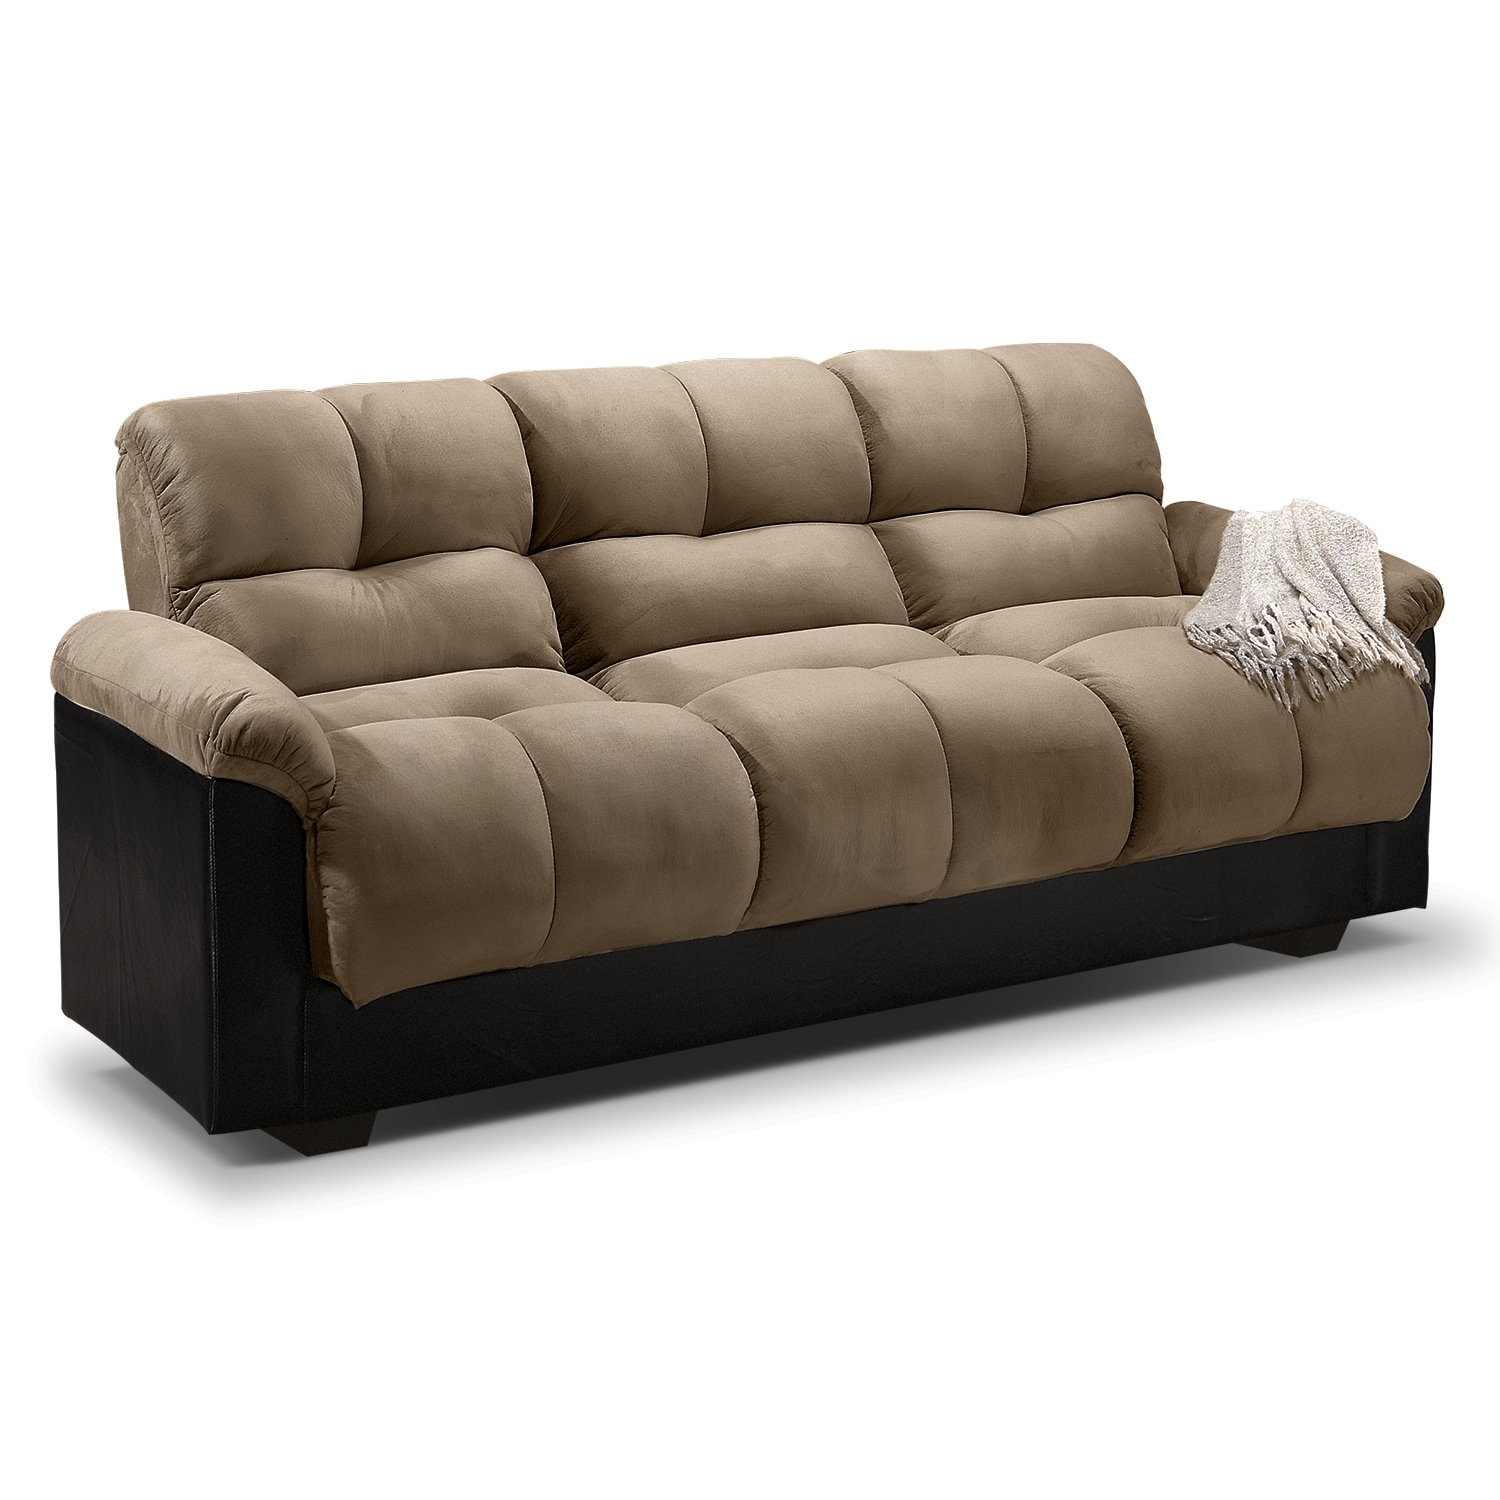 ara futon sofa bed with storage - hazelnut | american signature